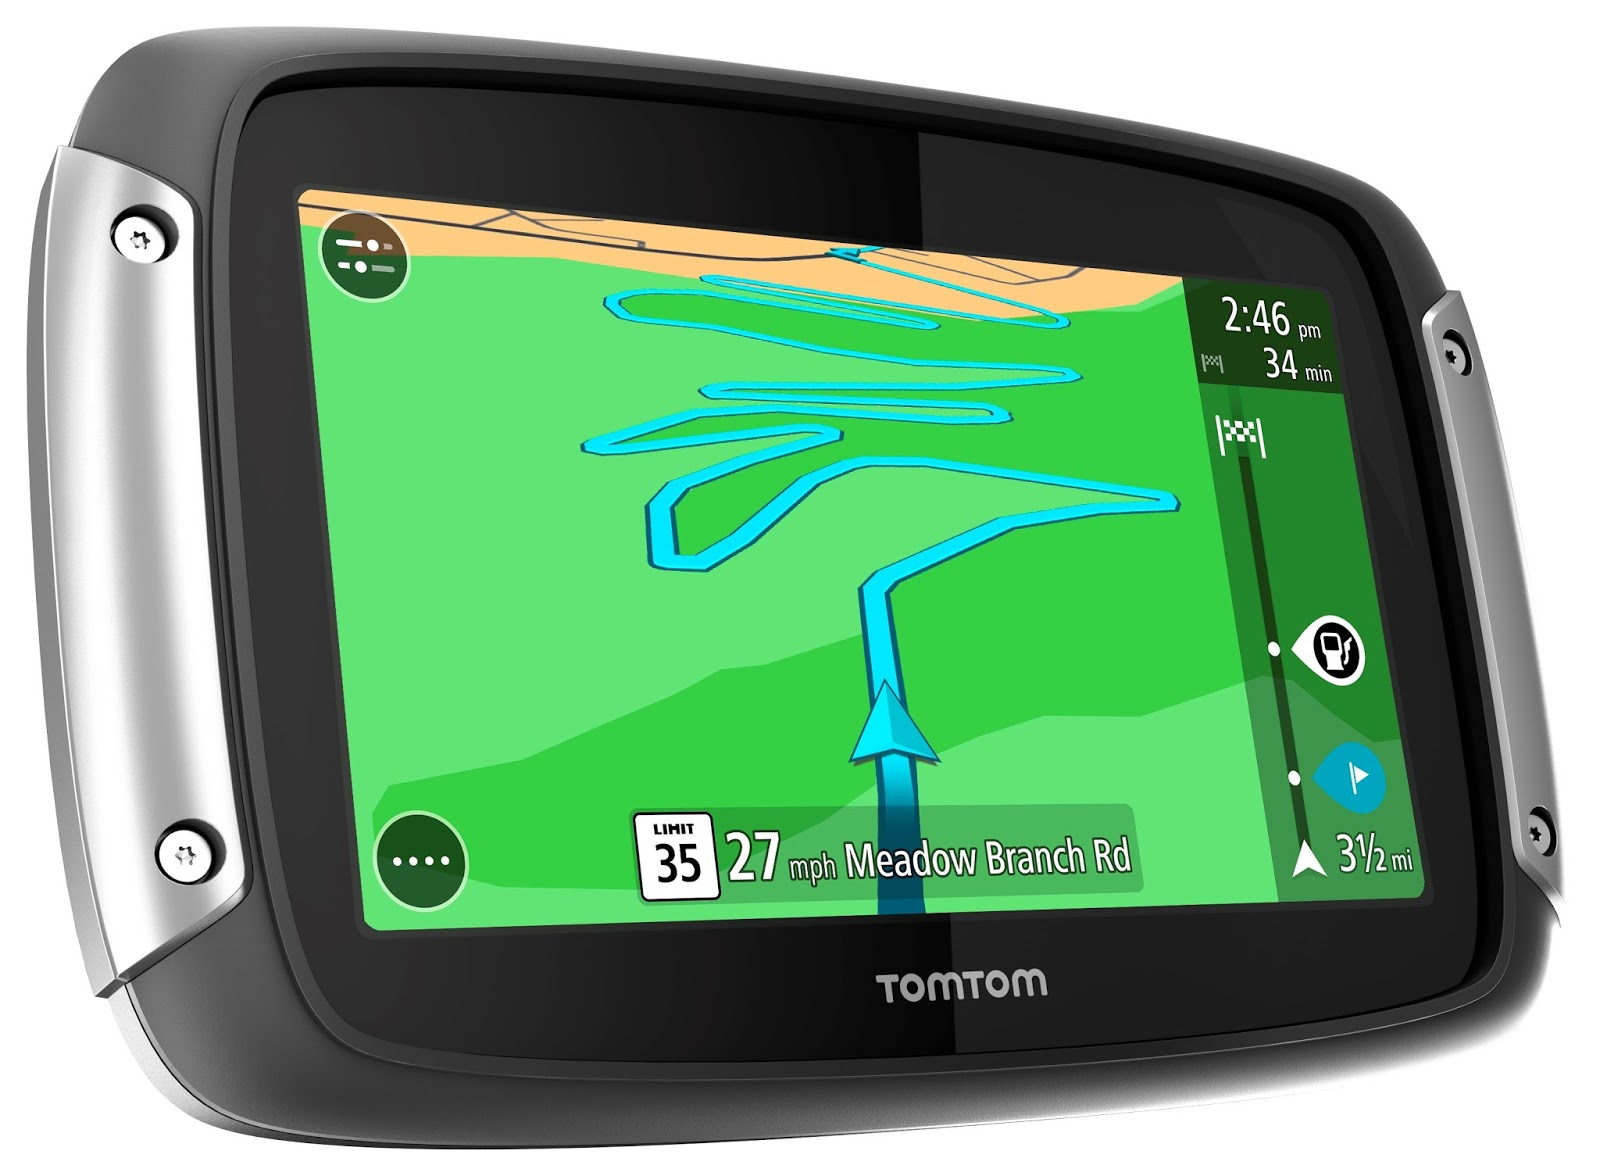 tomtom announces motorcycle gps with new features biker. Black Bedroom Furniture Sets. Home Design Ideas